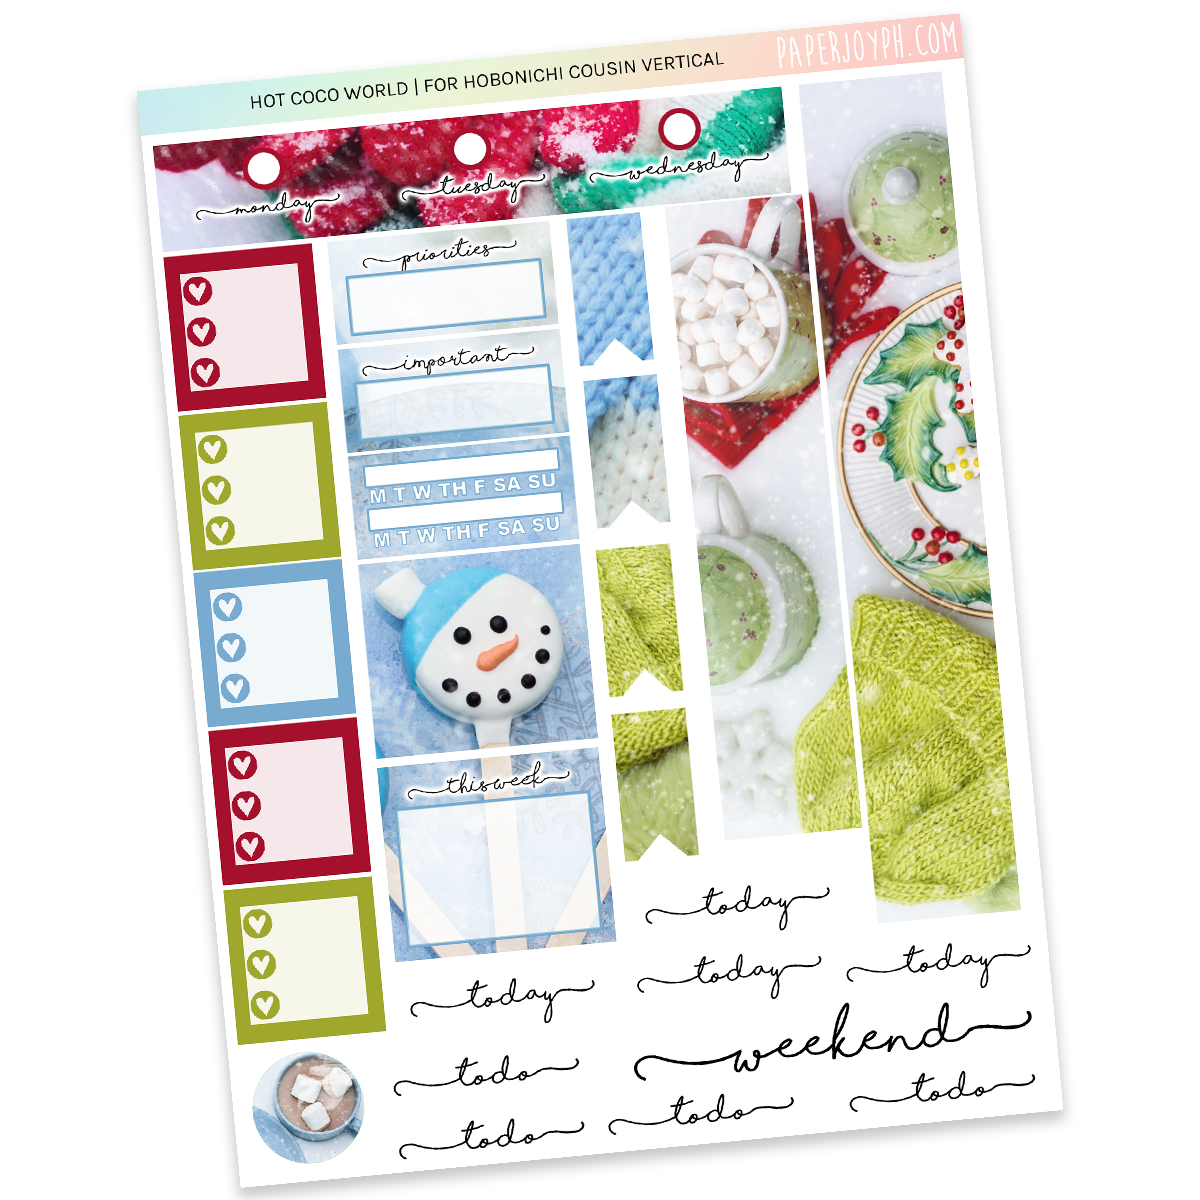 HOBONICHI COUSIN | VERTICAL STICKER KIT | Hot Coco World